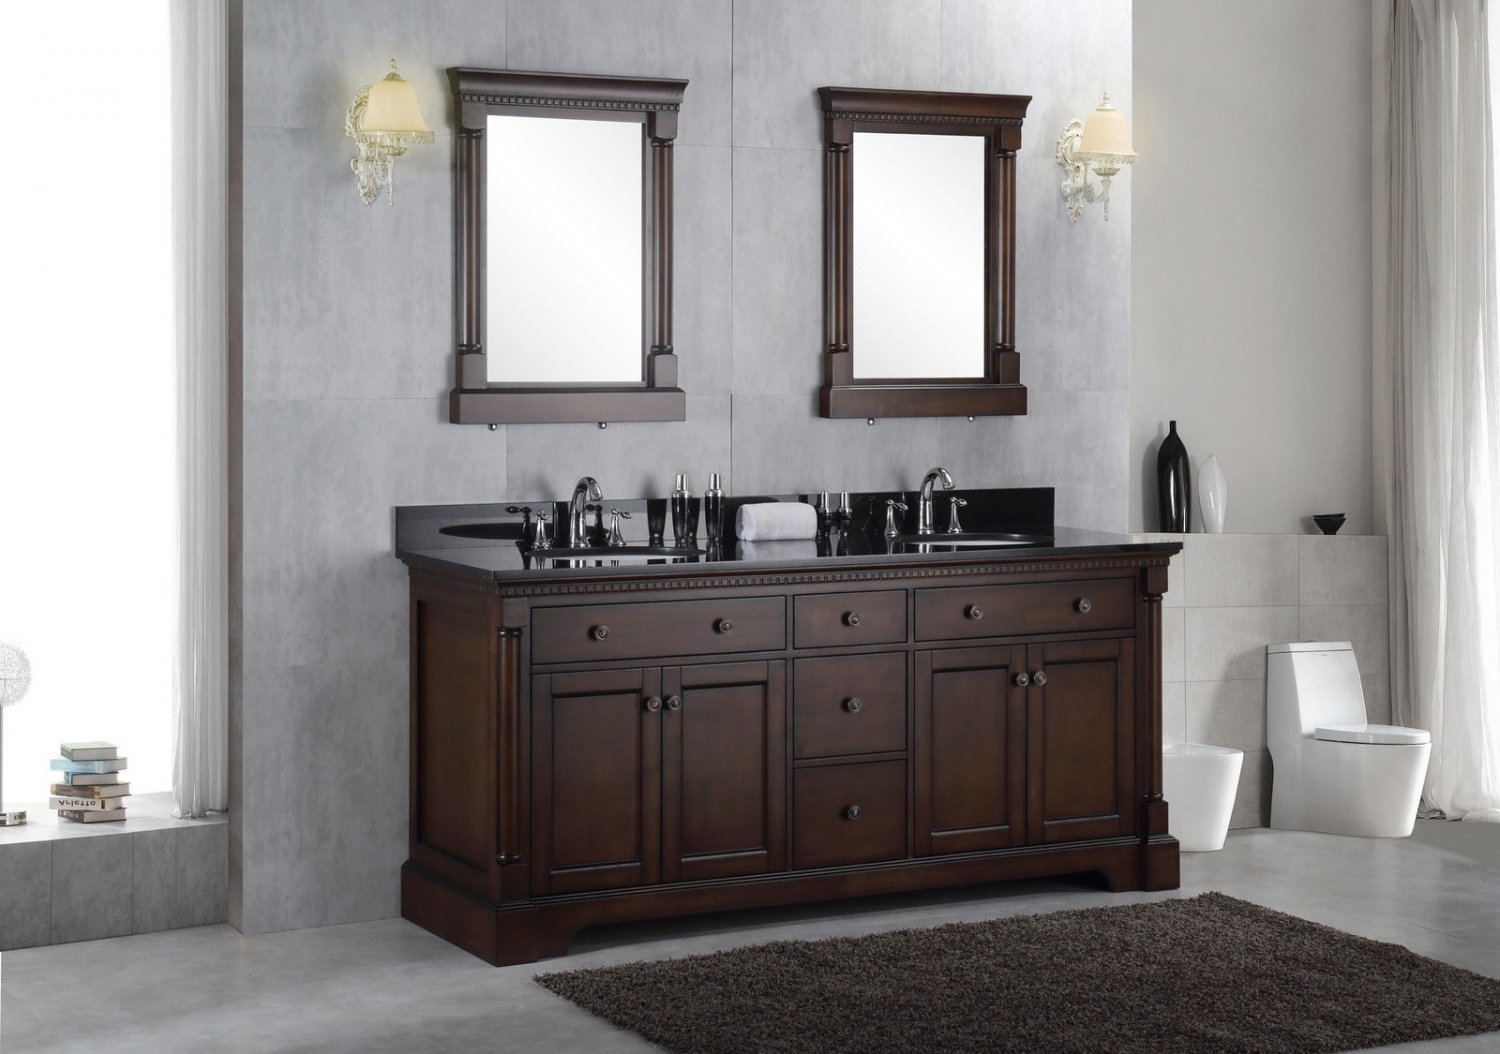 72quot Solid Wood Double Bathroom Vanity Sink Cabinet W